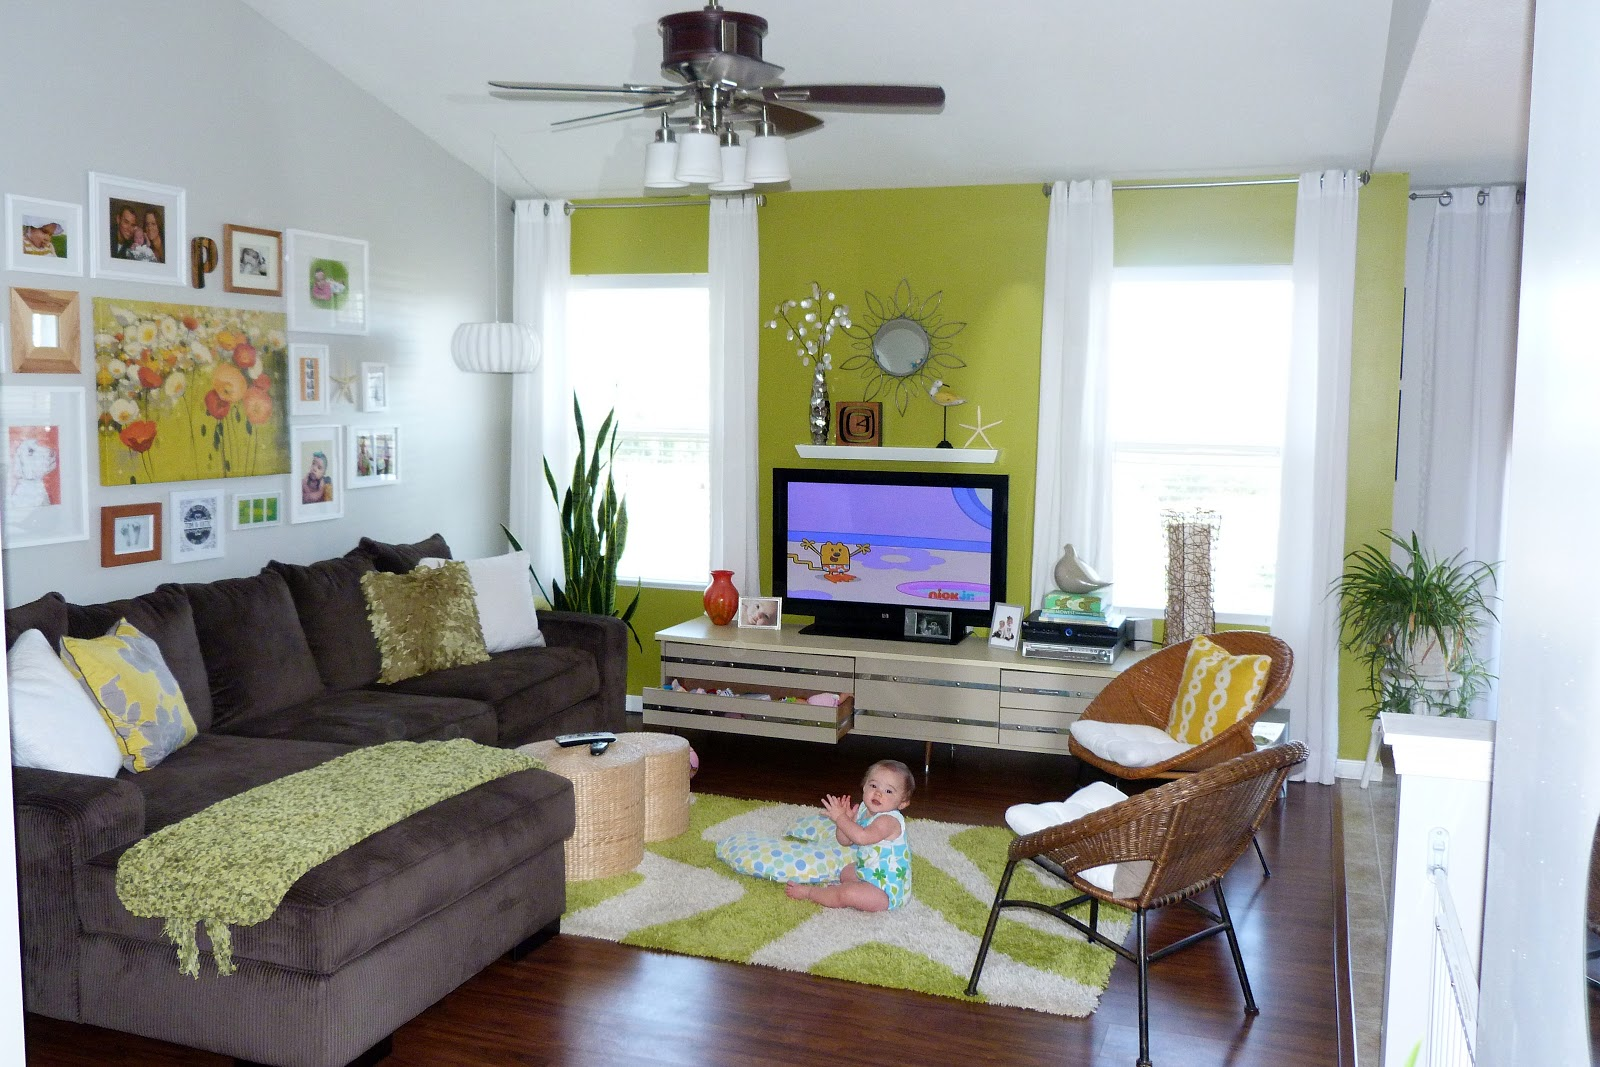 Living Room Decor Sneira Modern Home You Should Paint Everything Lime Green